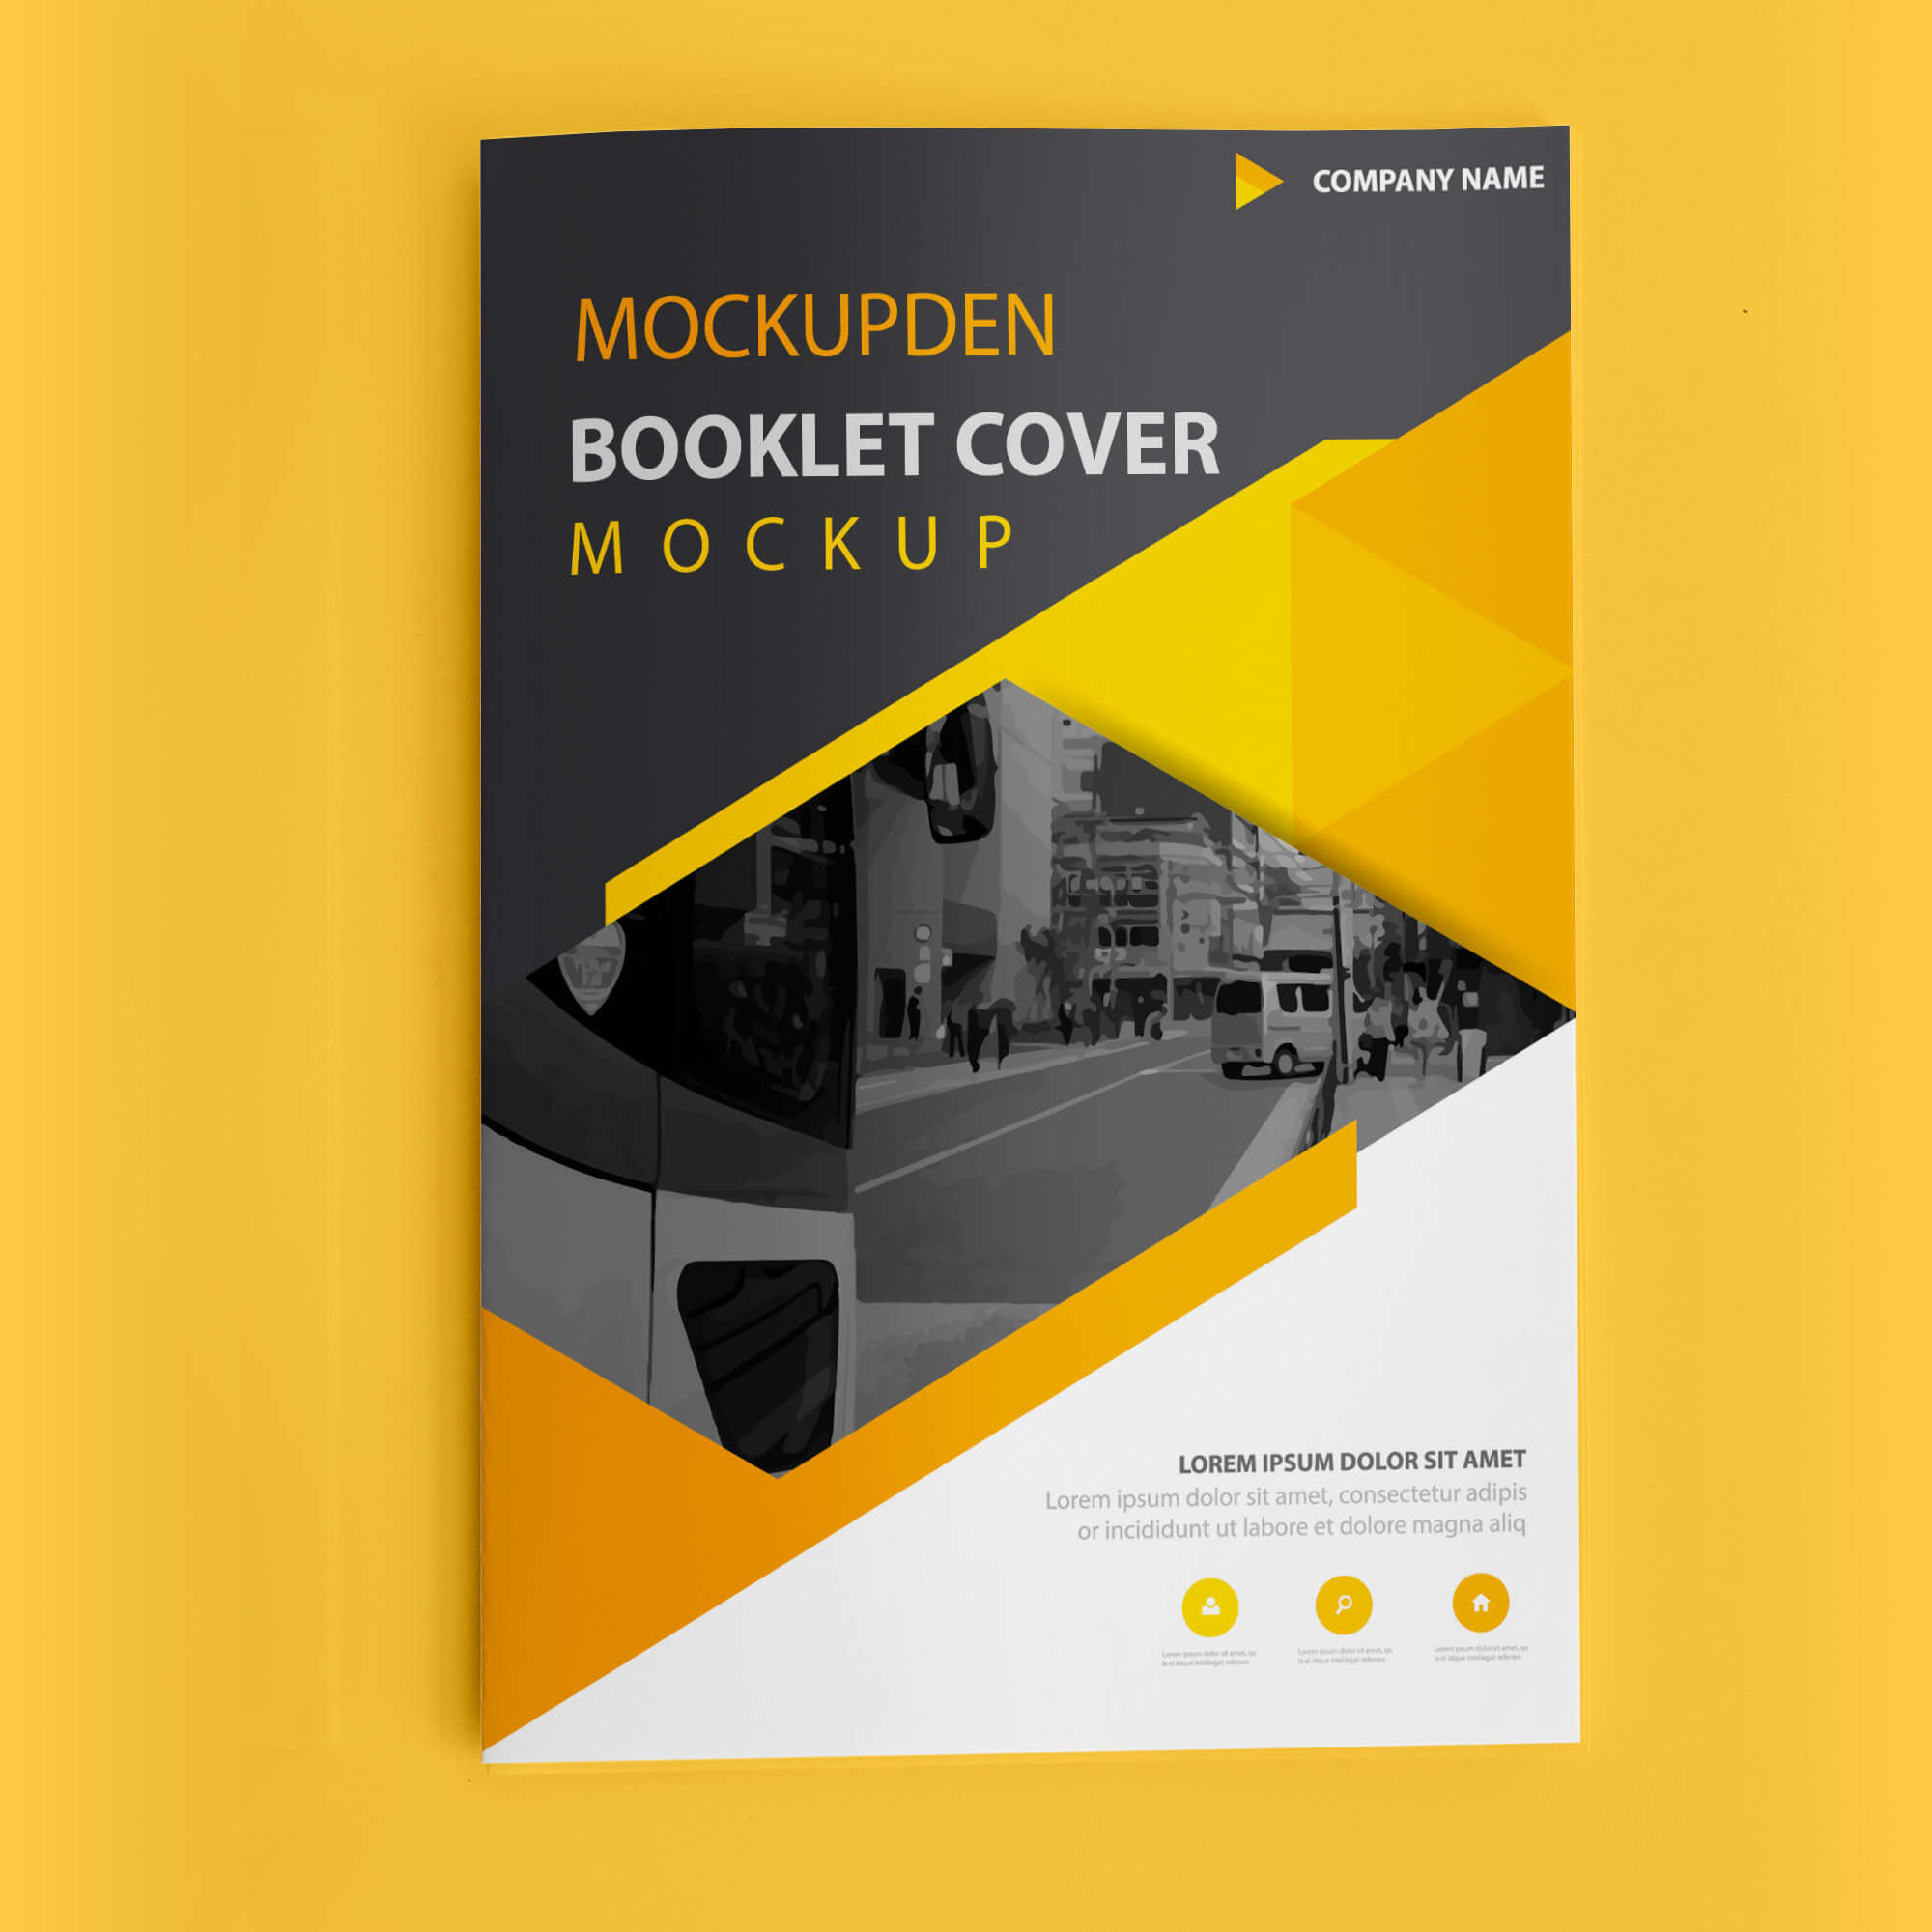 Design Free Booklet Cover Mockup PSD Template